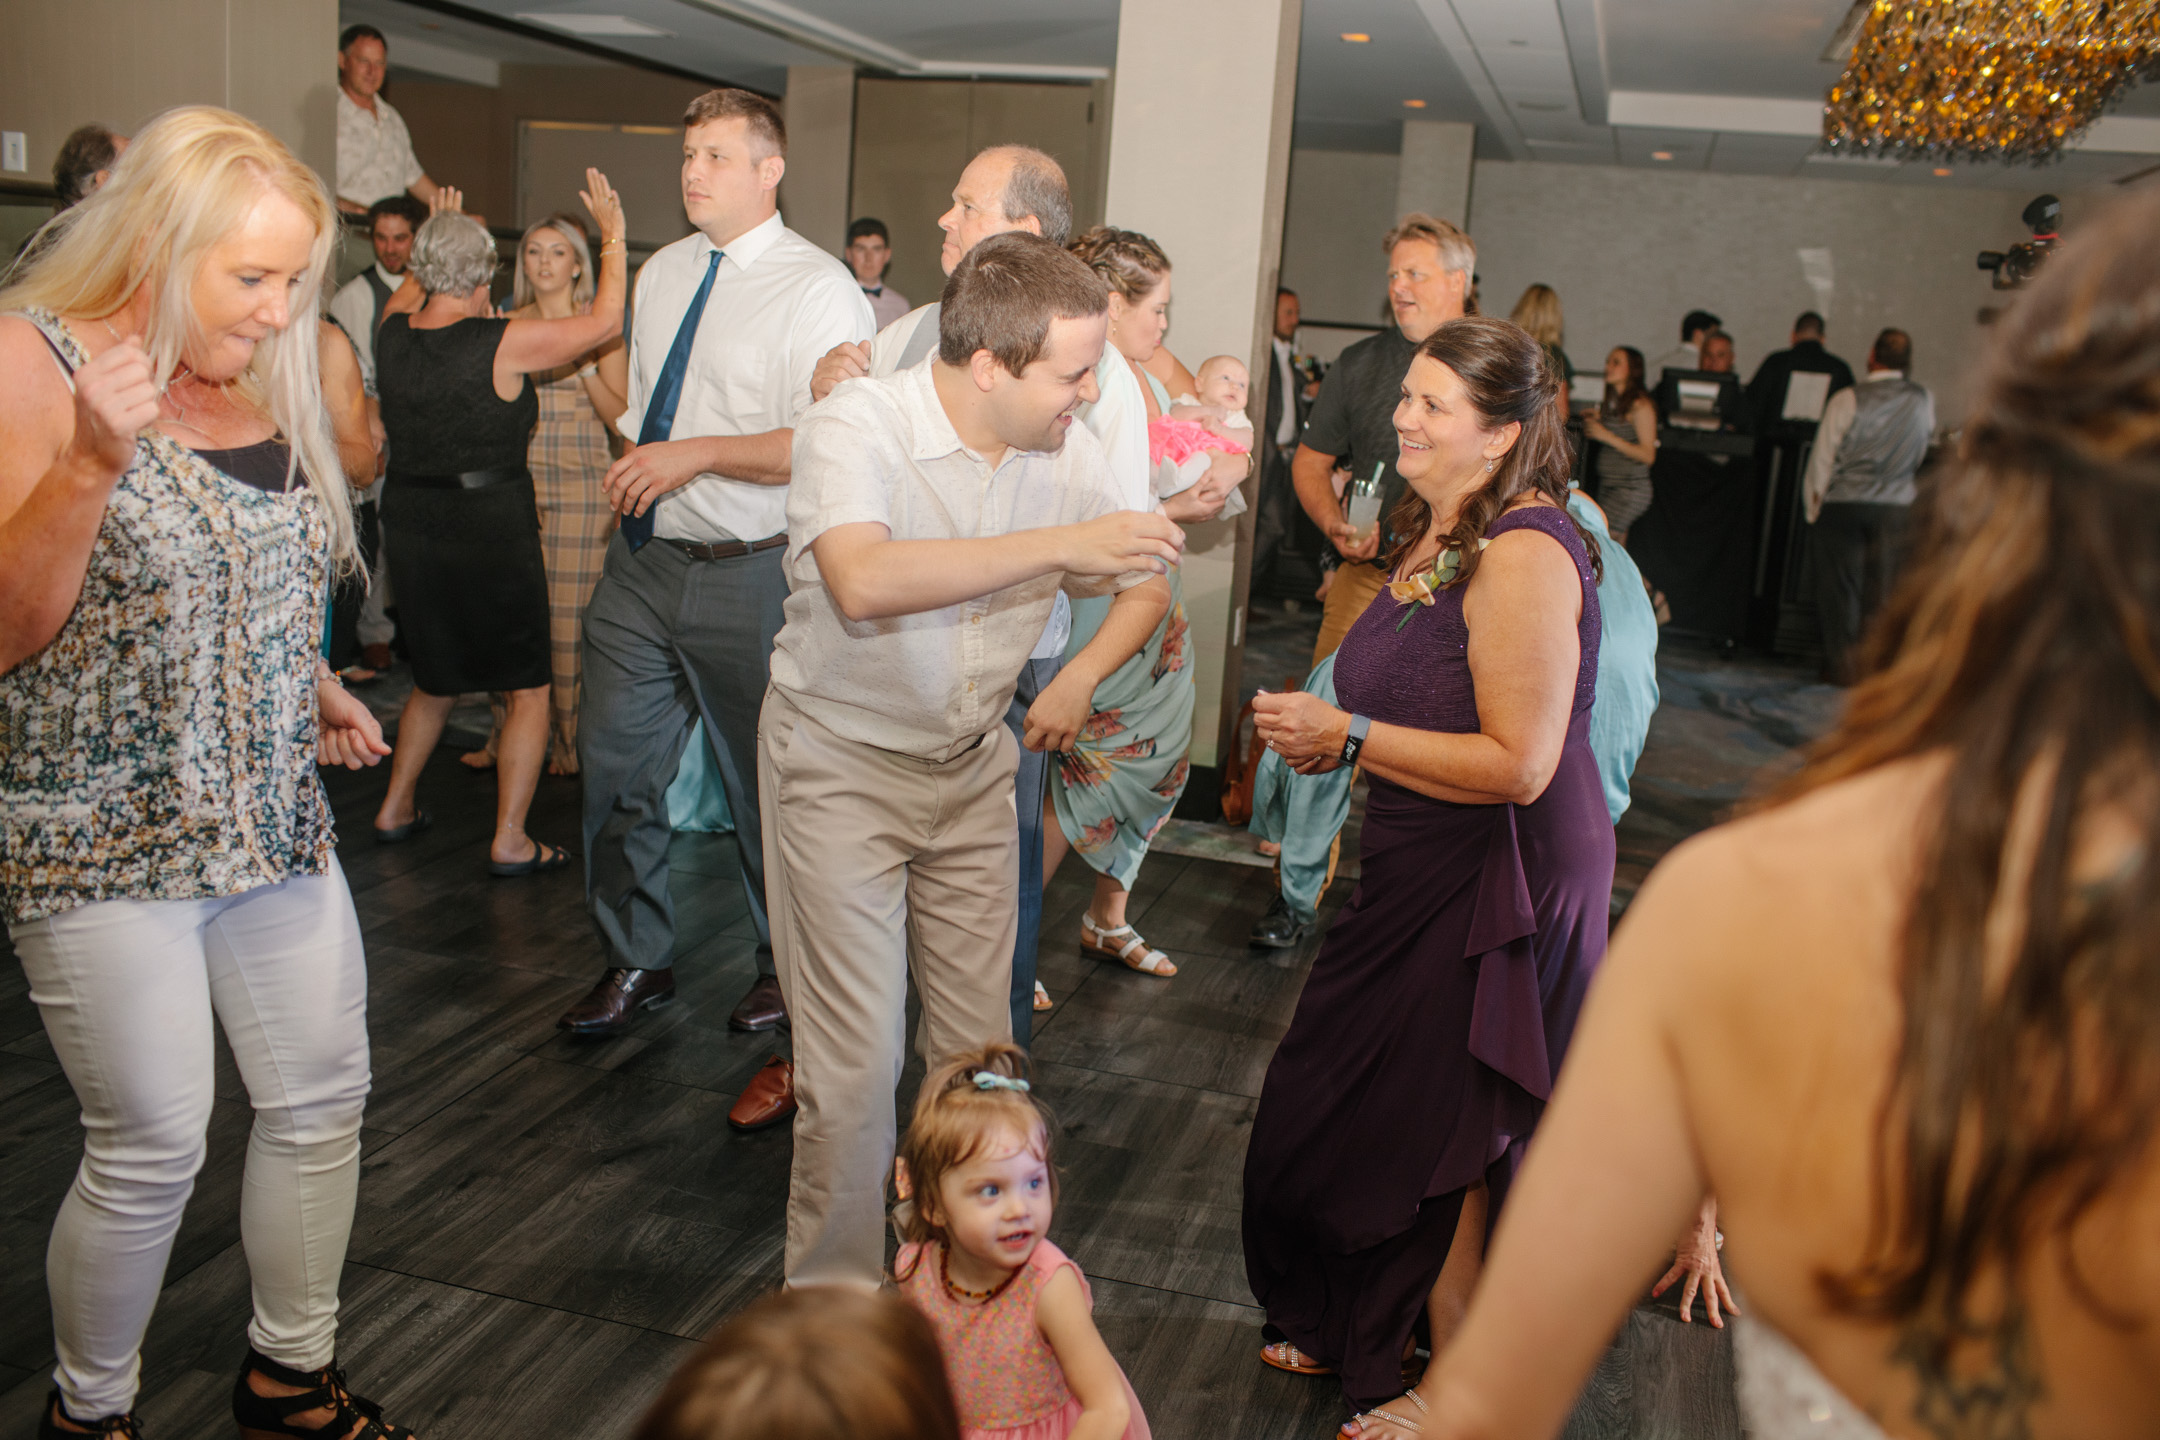 DANCE_PARTY-photos-wedding-des-moines-01